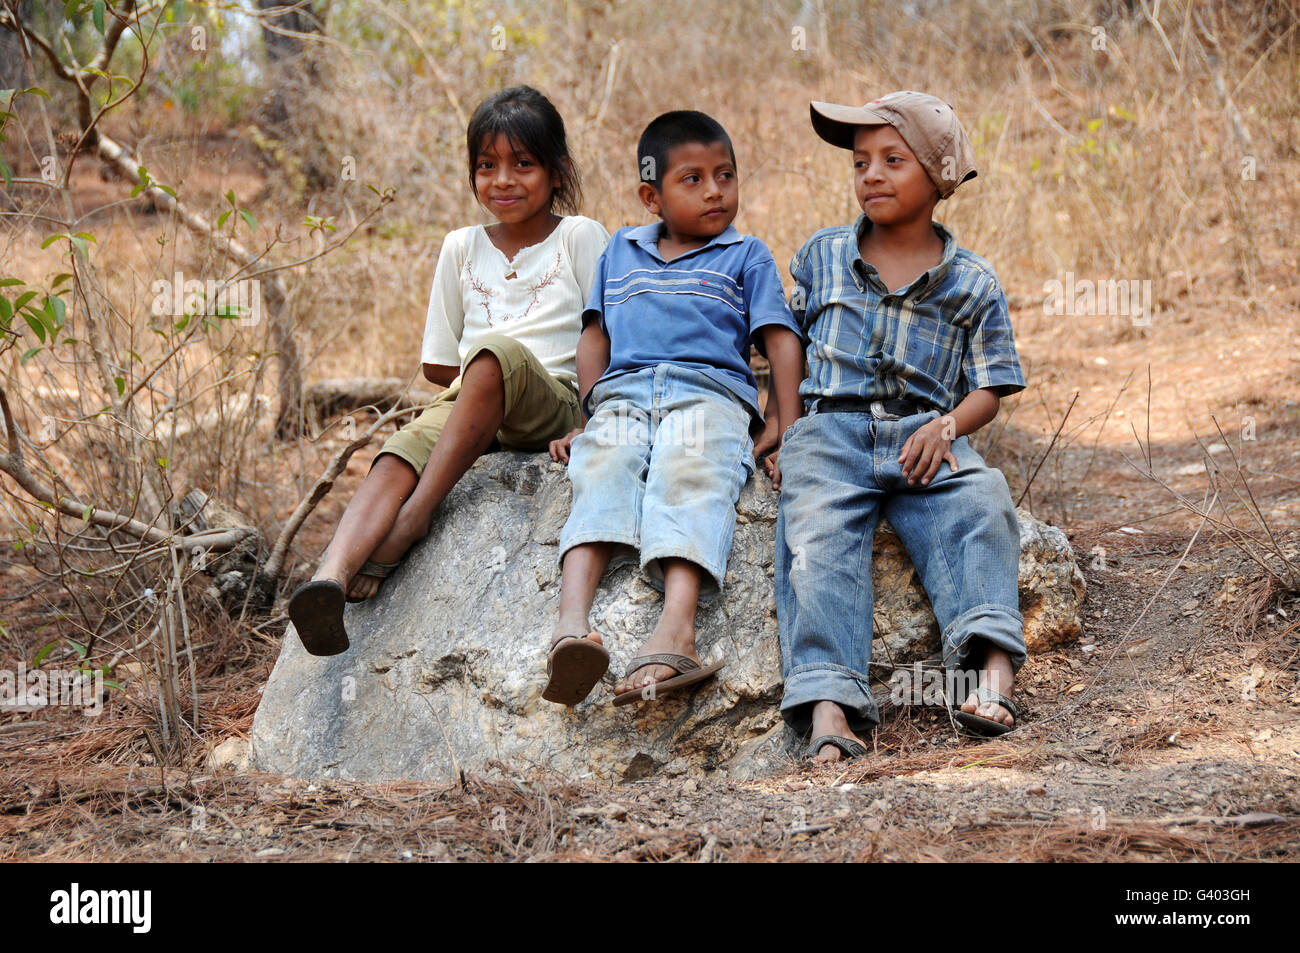 Guatemalan children sitting on a rock in El Robles, Guatemala. - Stock Image